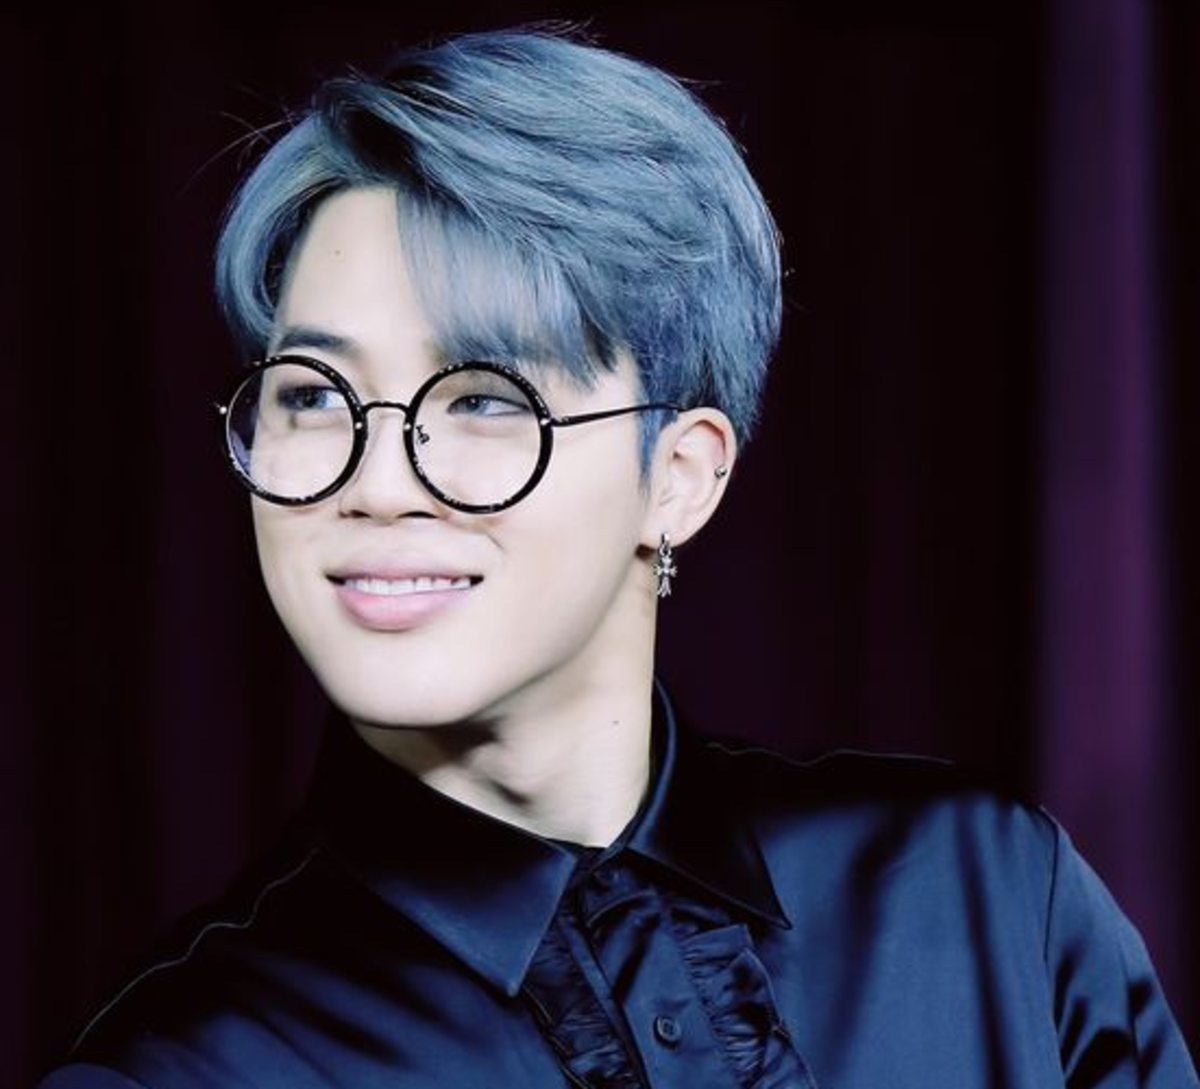 10-facts-and-profile-about-bts-member-park-jimin